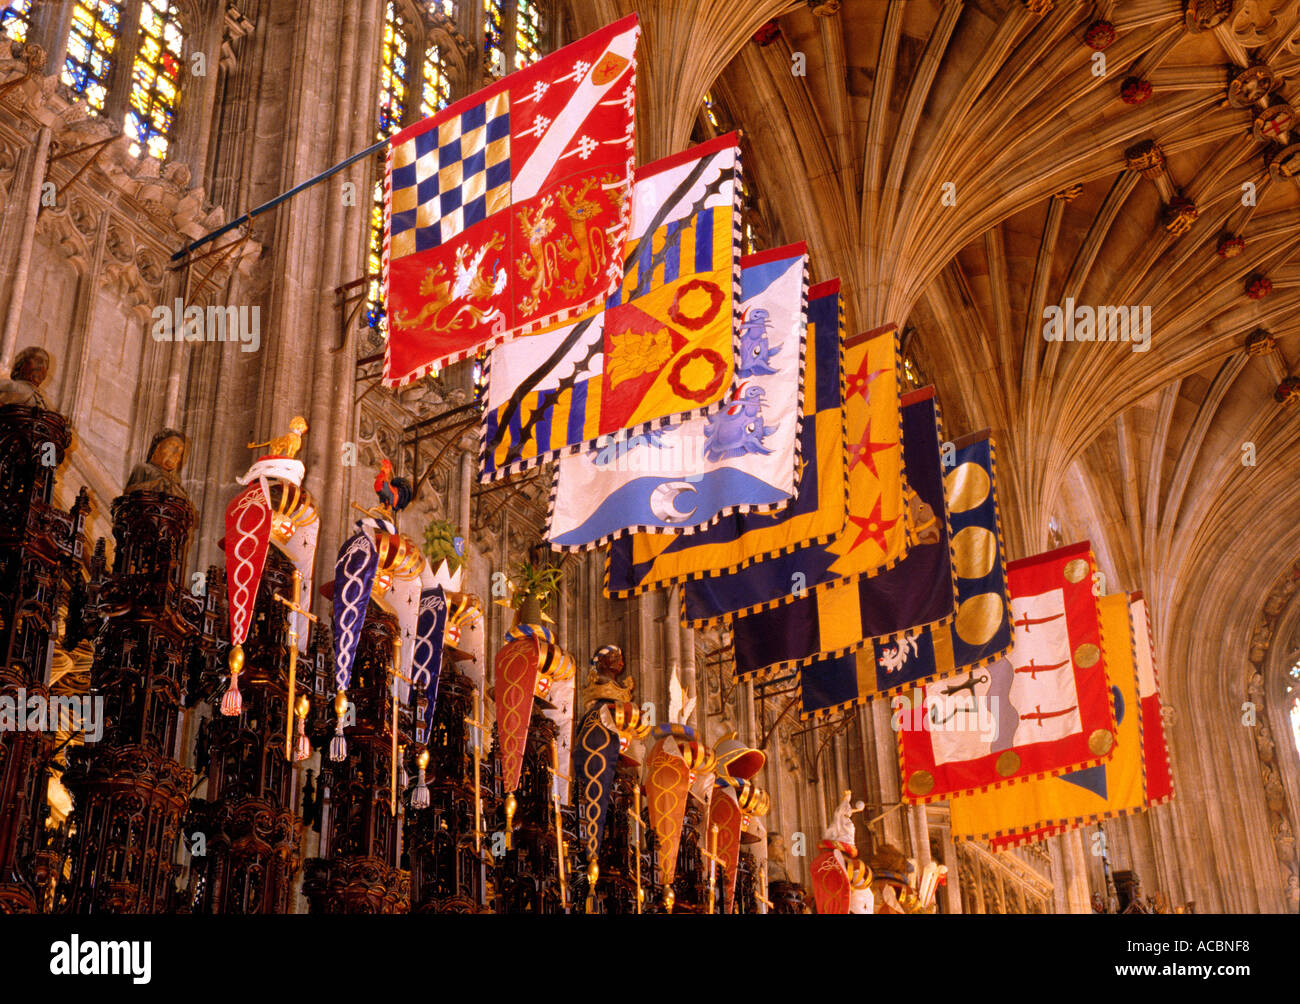 Windsor St Georges Chapel Heraldry choir Berkshire England UK Banners Flags Coat of Arms Knights of the Garter travel interior interiors - Stock Image